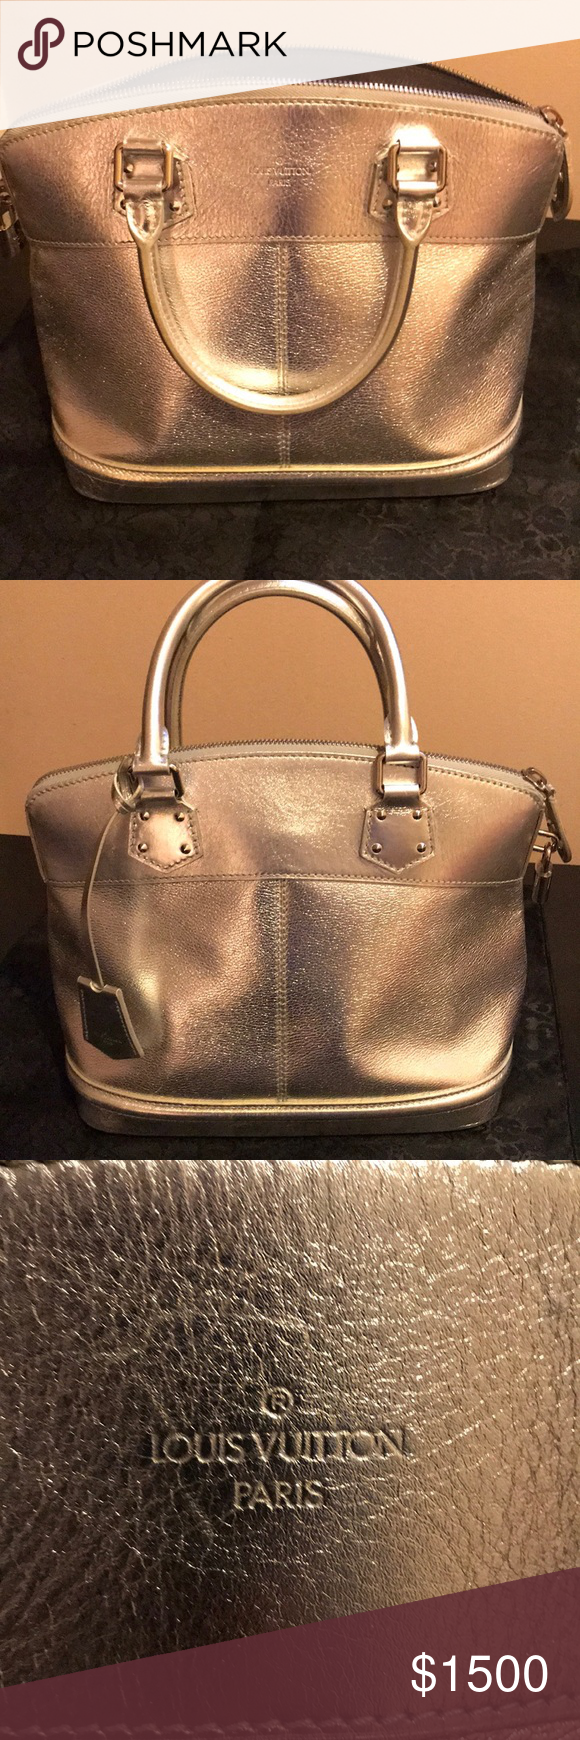 Louis Vuitton Silver Suhali Lockit PM Louis Vuitton Silver Suhali Lockit PM.  Metallic goatskin leather debf8e2edcbd5